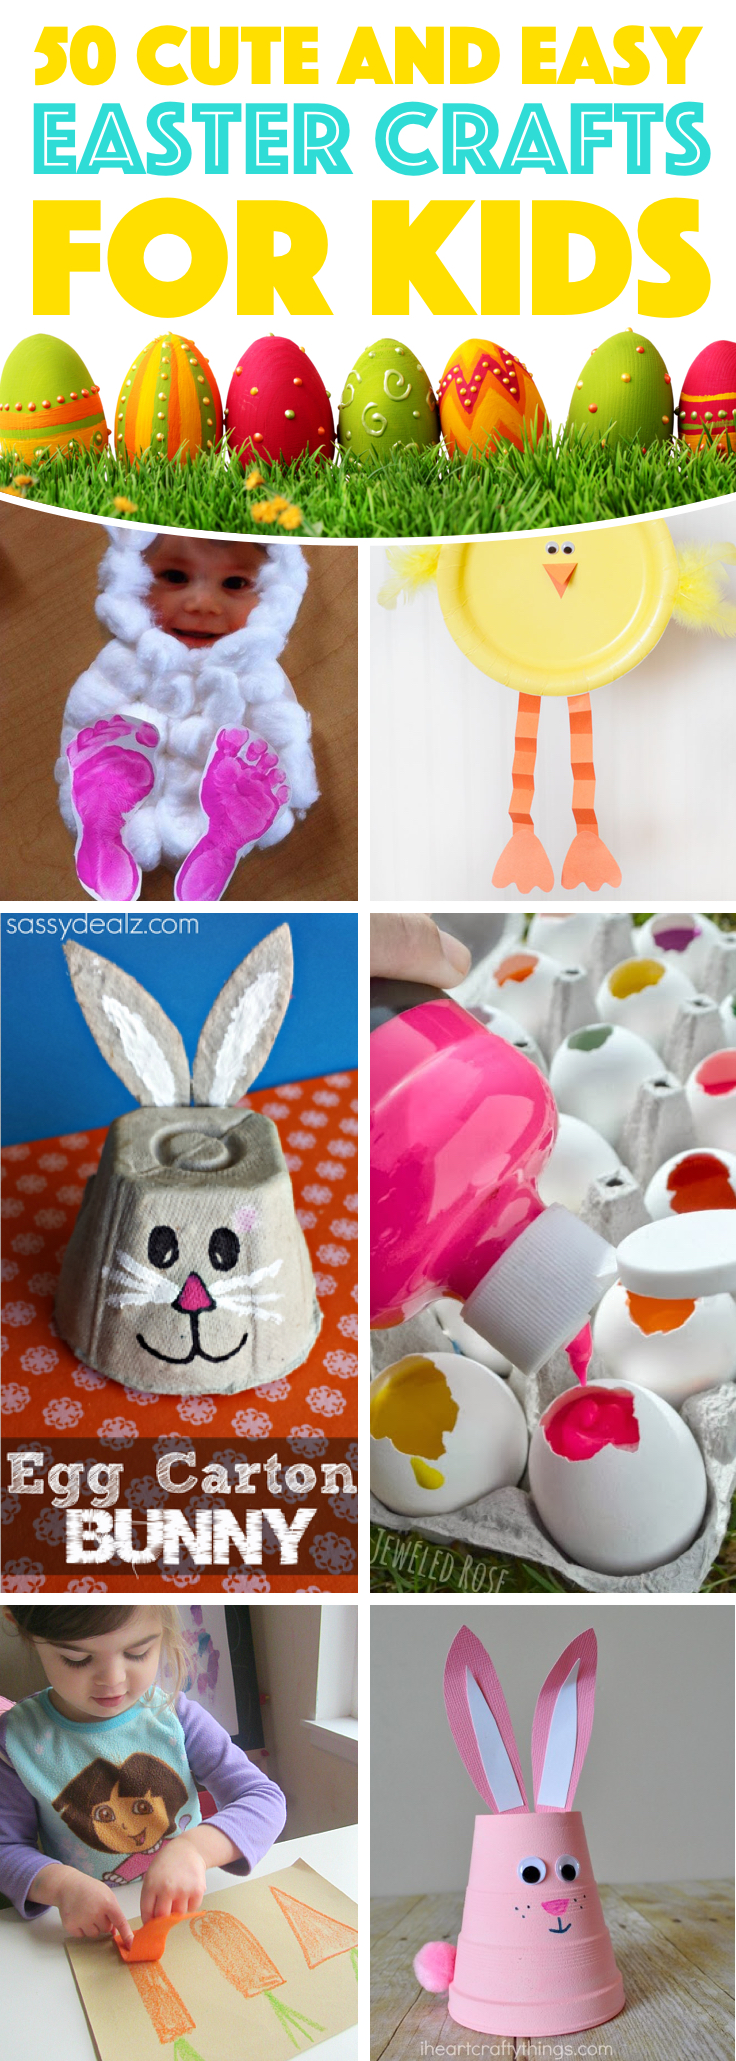 32+ Cute and Creative Easter Crafts For Kids in 32